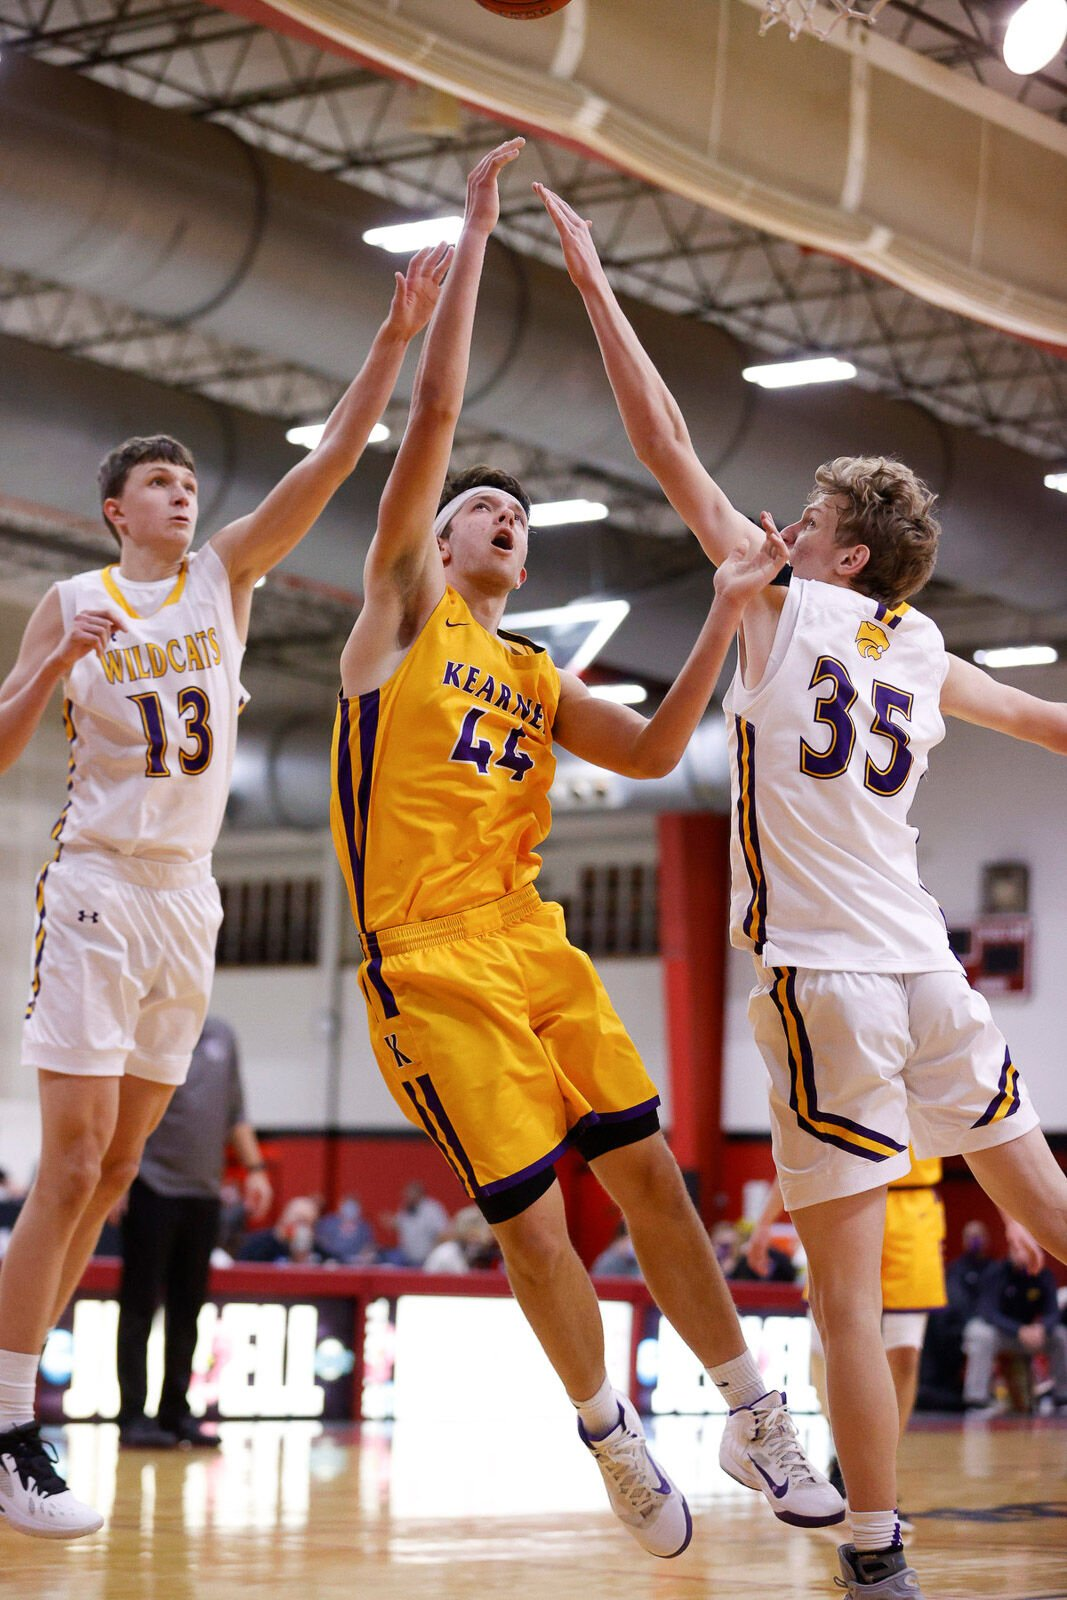 Kearney boys basketball against Blue Springs in William Jewell Holiday Classic-18.jpg